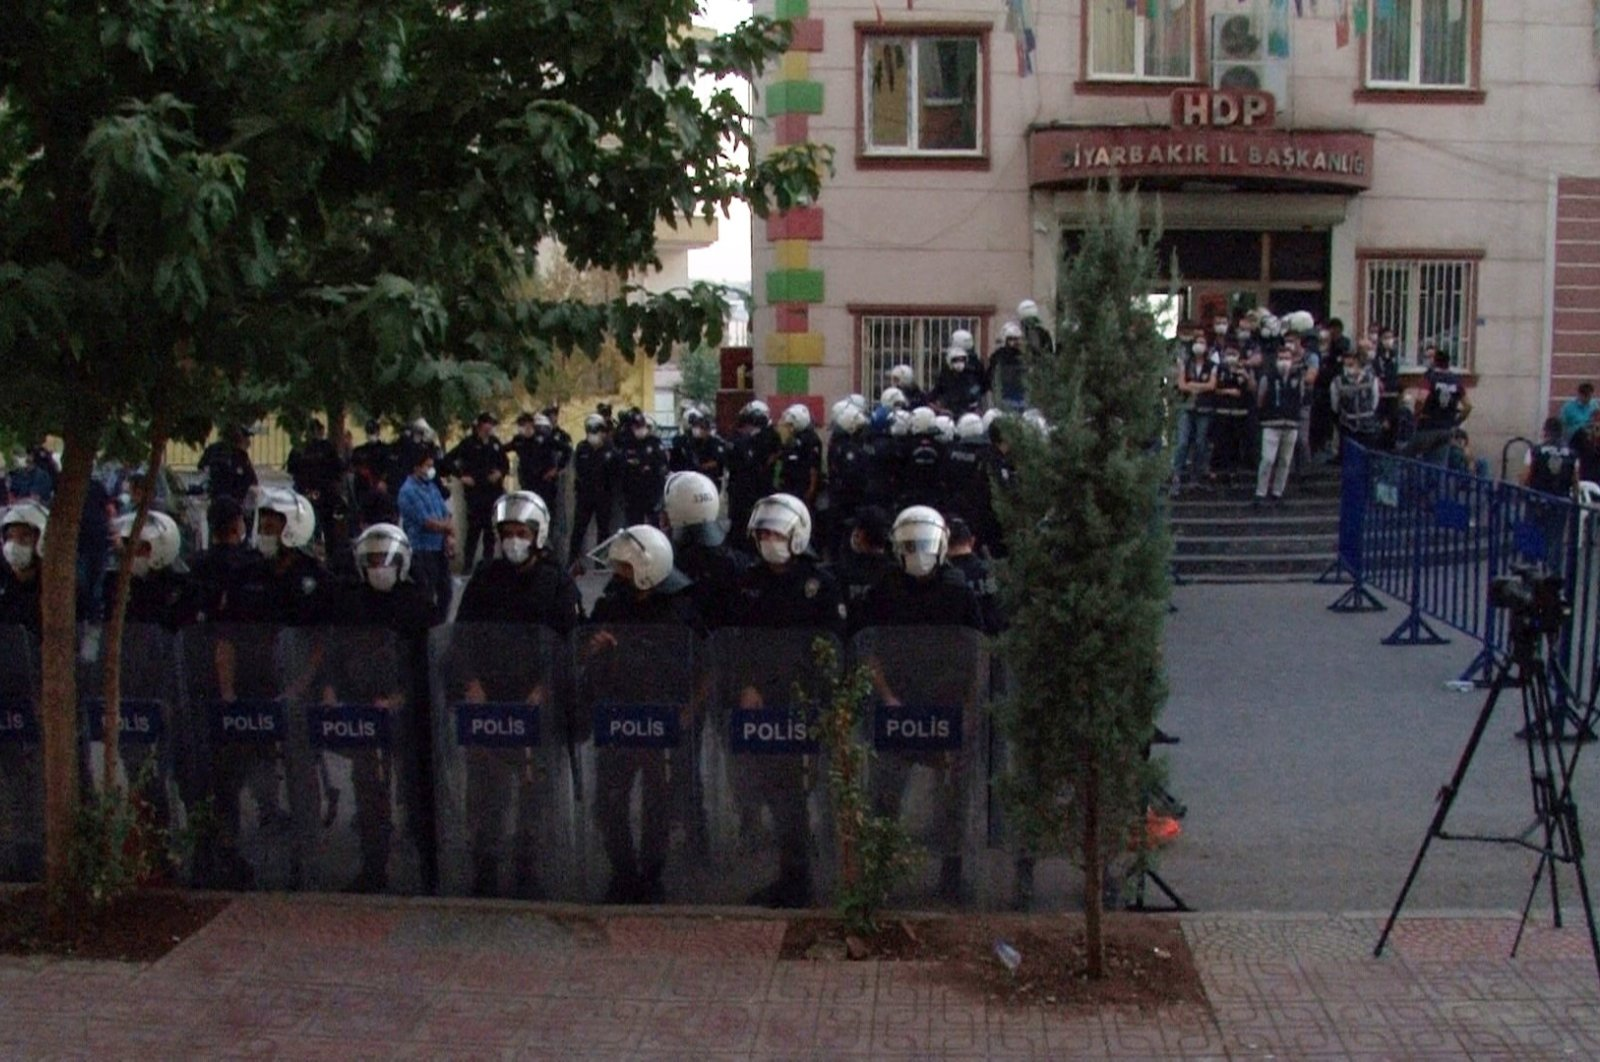 Police stand in front of the HDP headquarters in Diyarbakır province following the row between lawmaker and families staging a sit-in on Oct. 19, 2020 (IHA Photo)